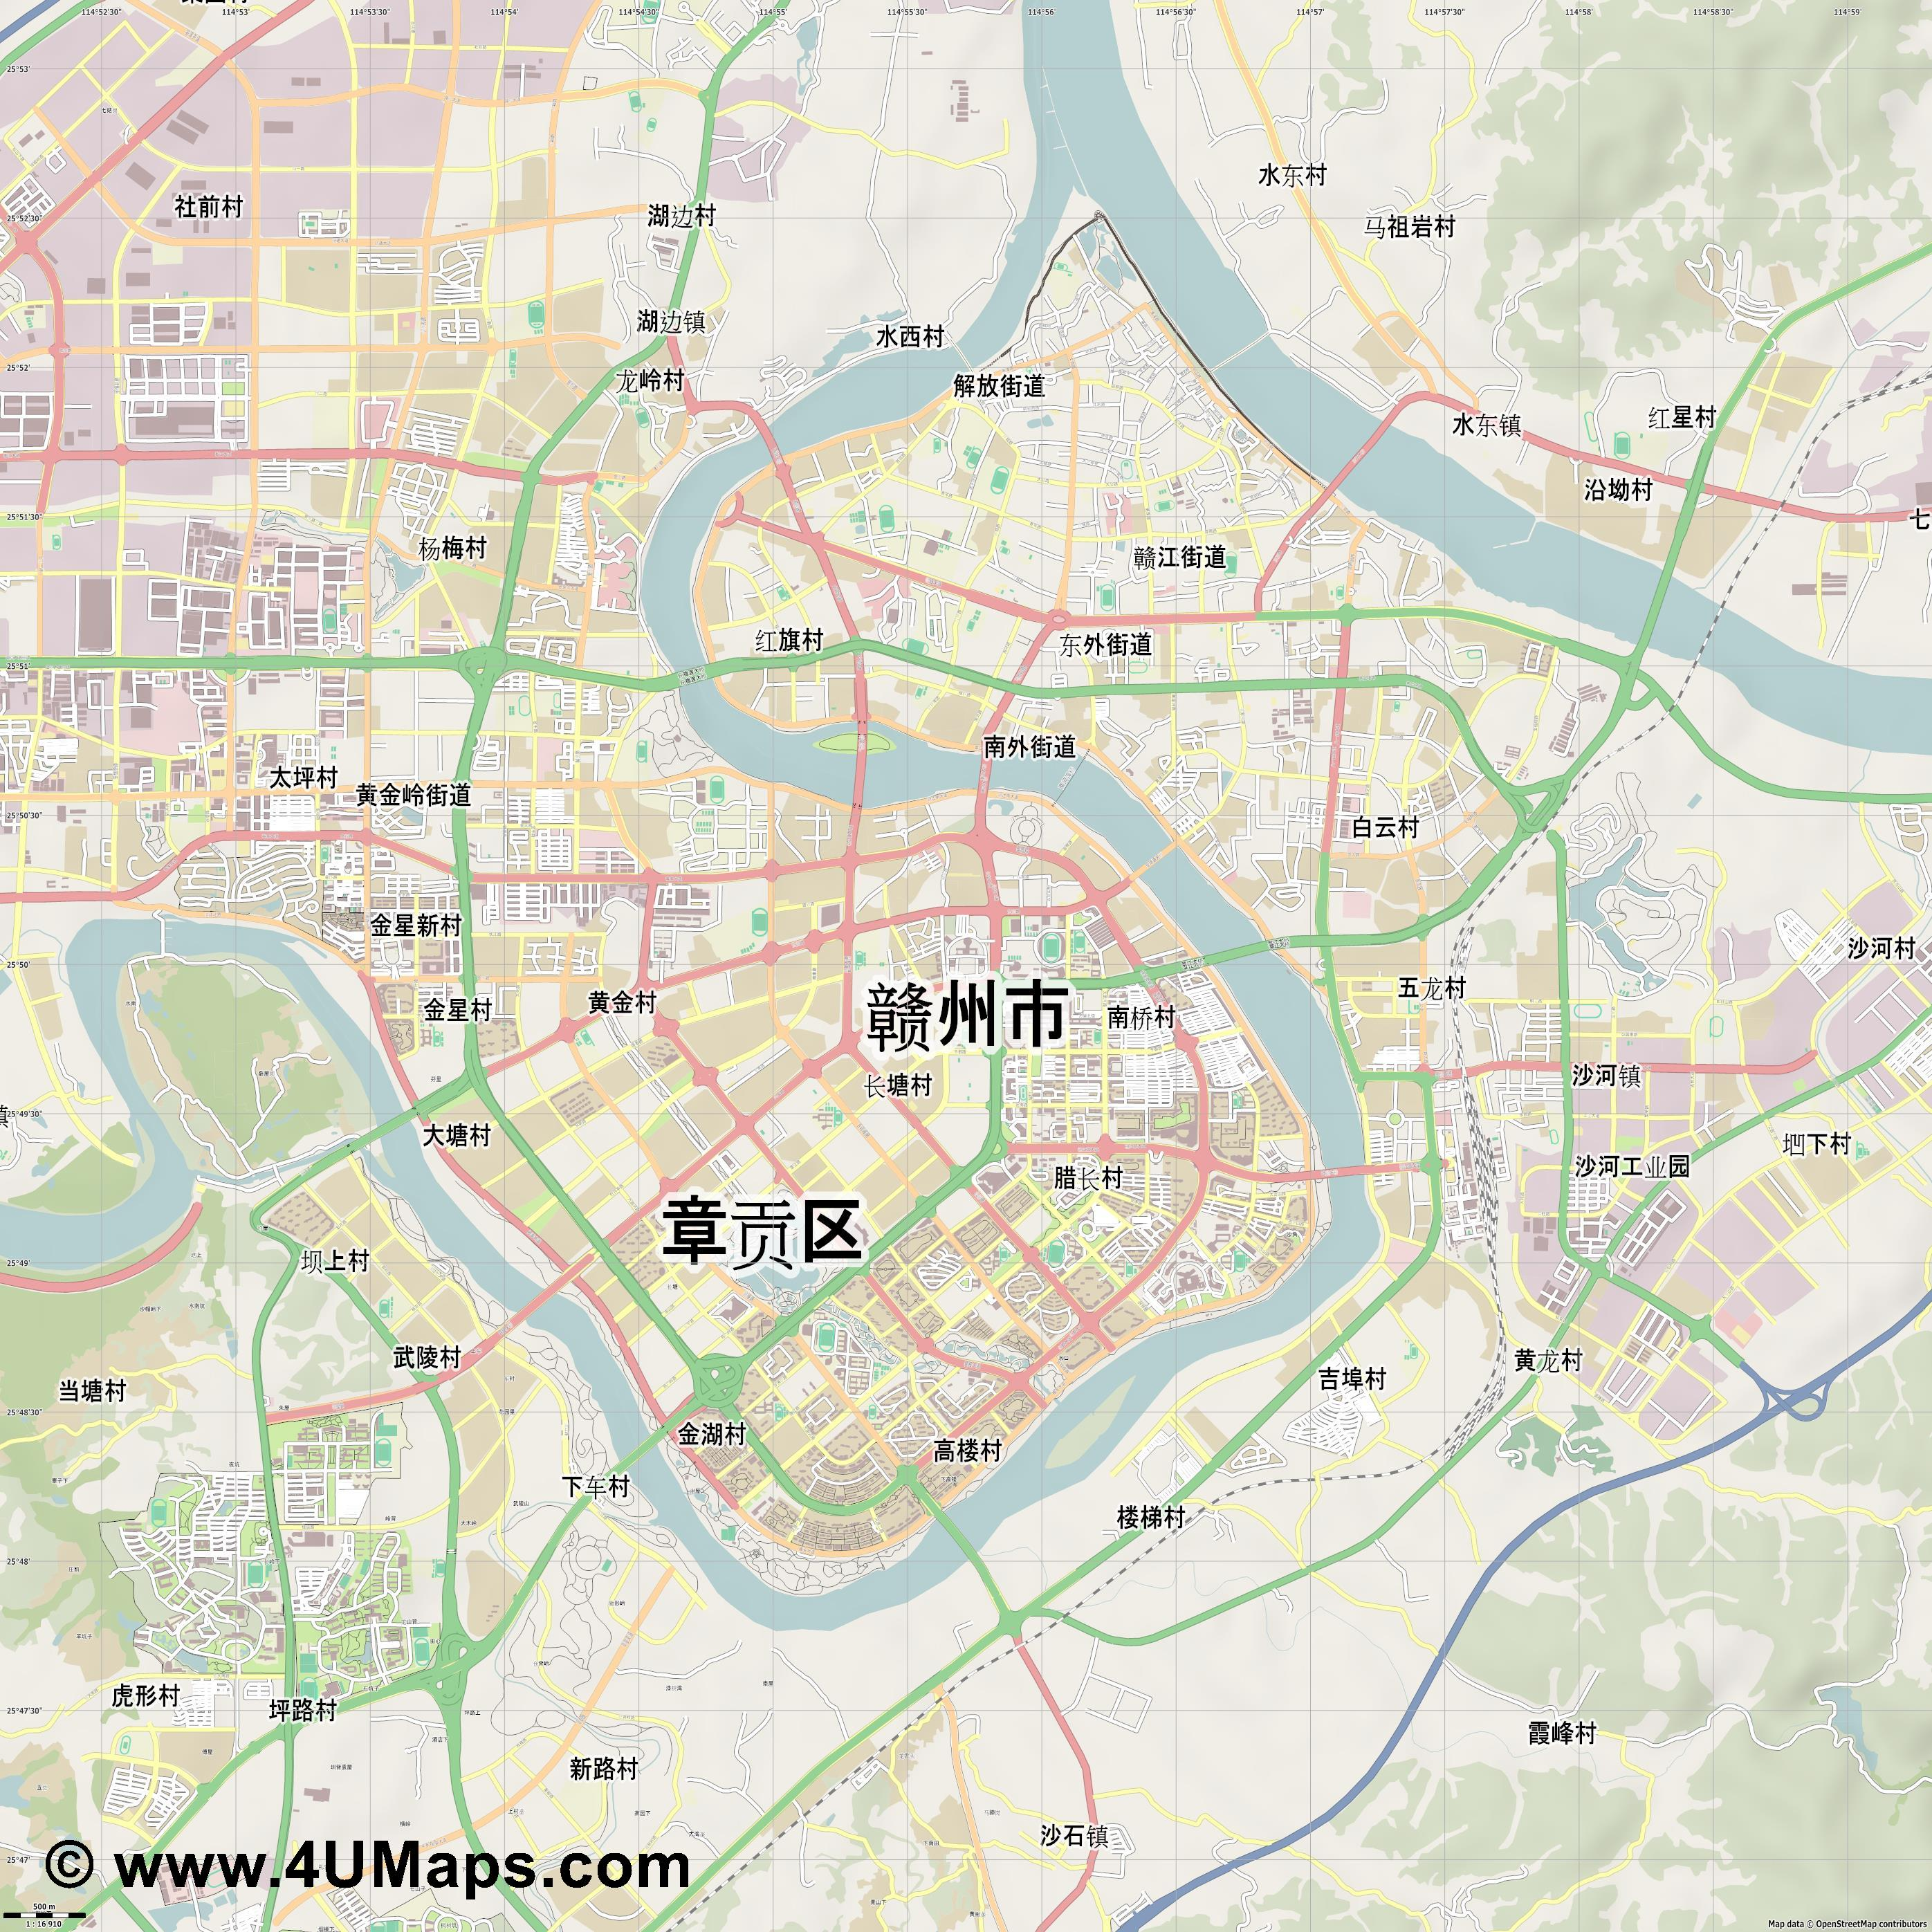 赣州市 Ganzhou  jpg ultra high detail preview vector city map